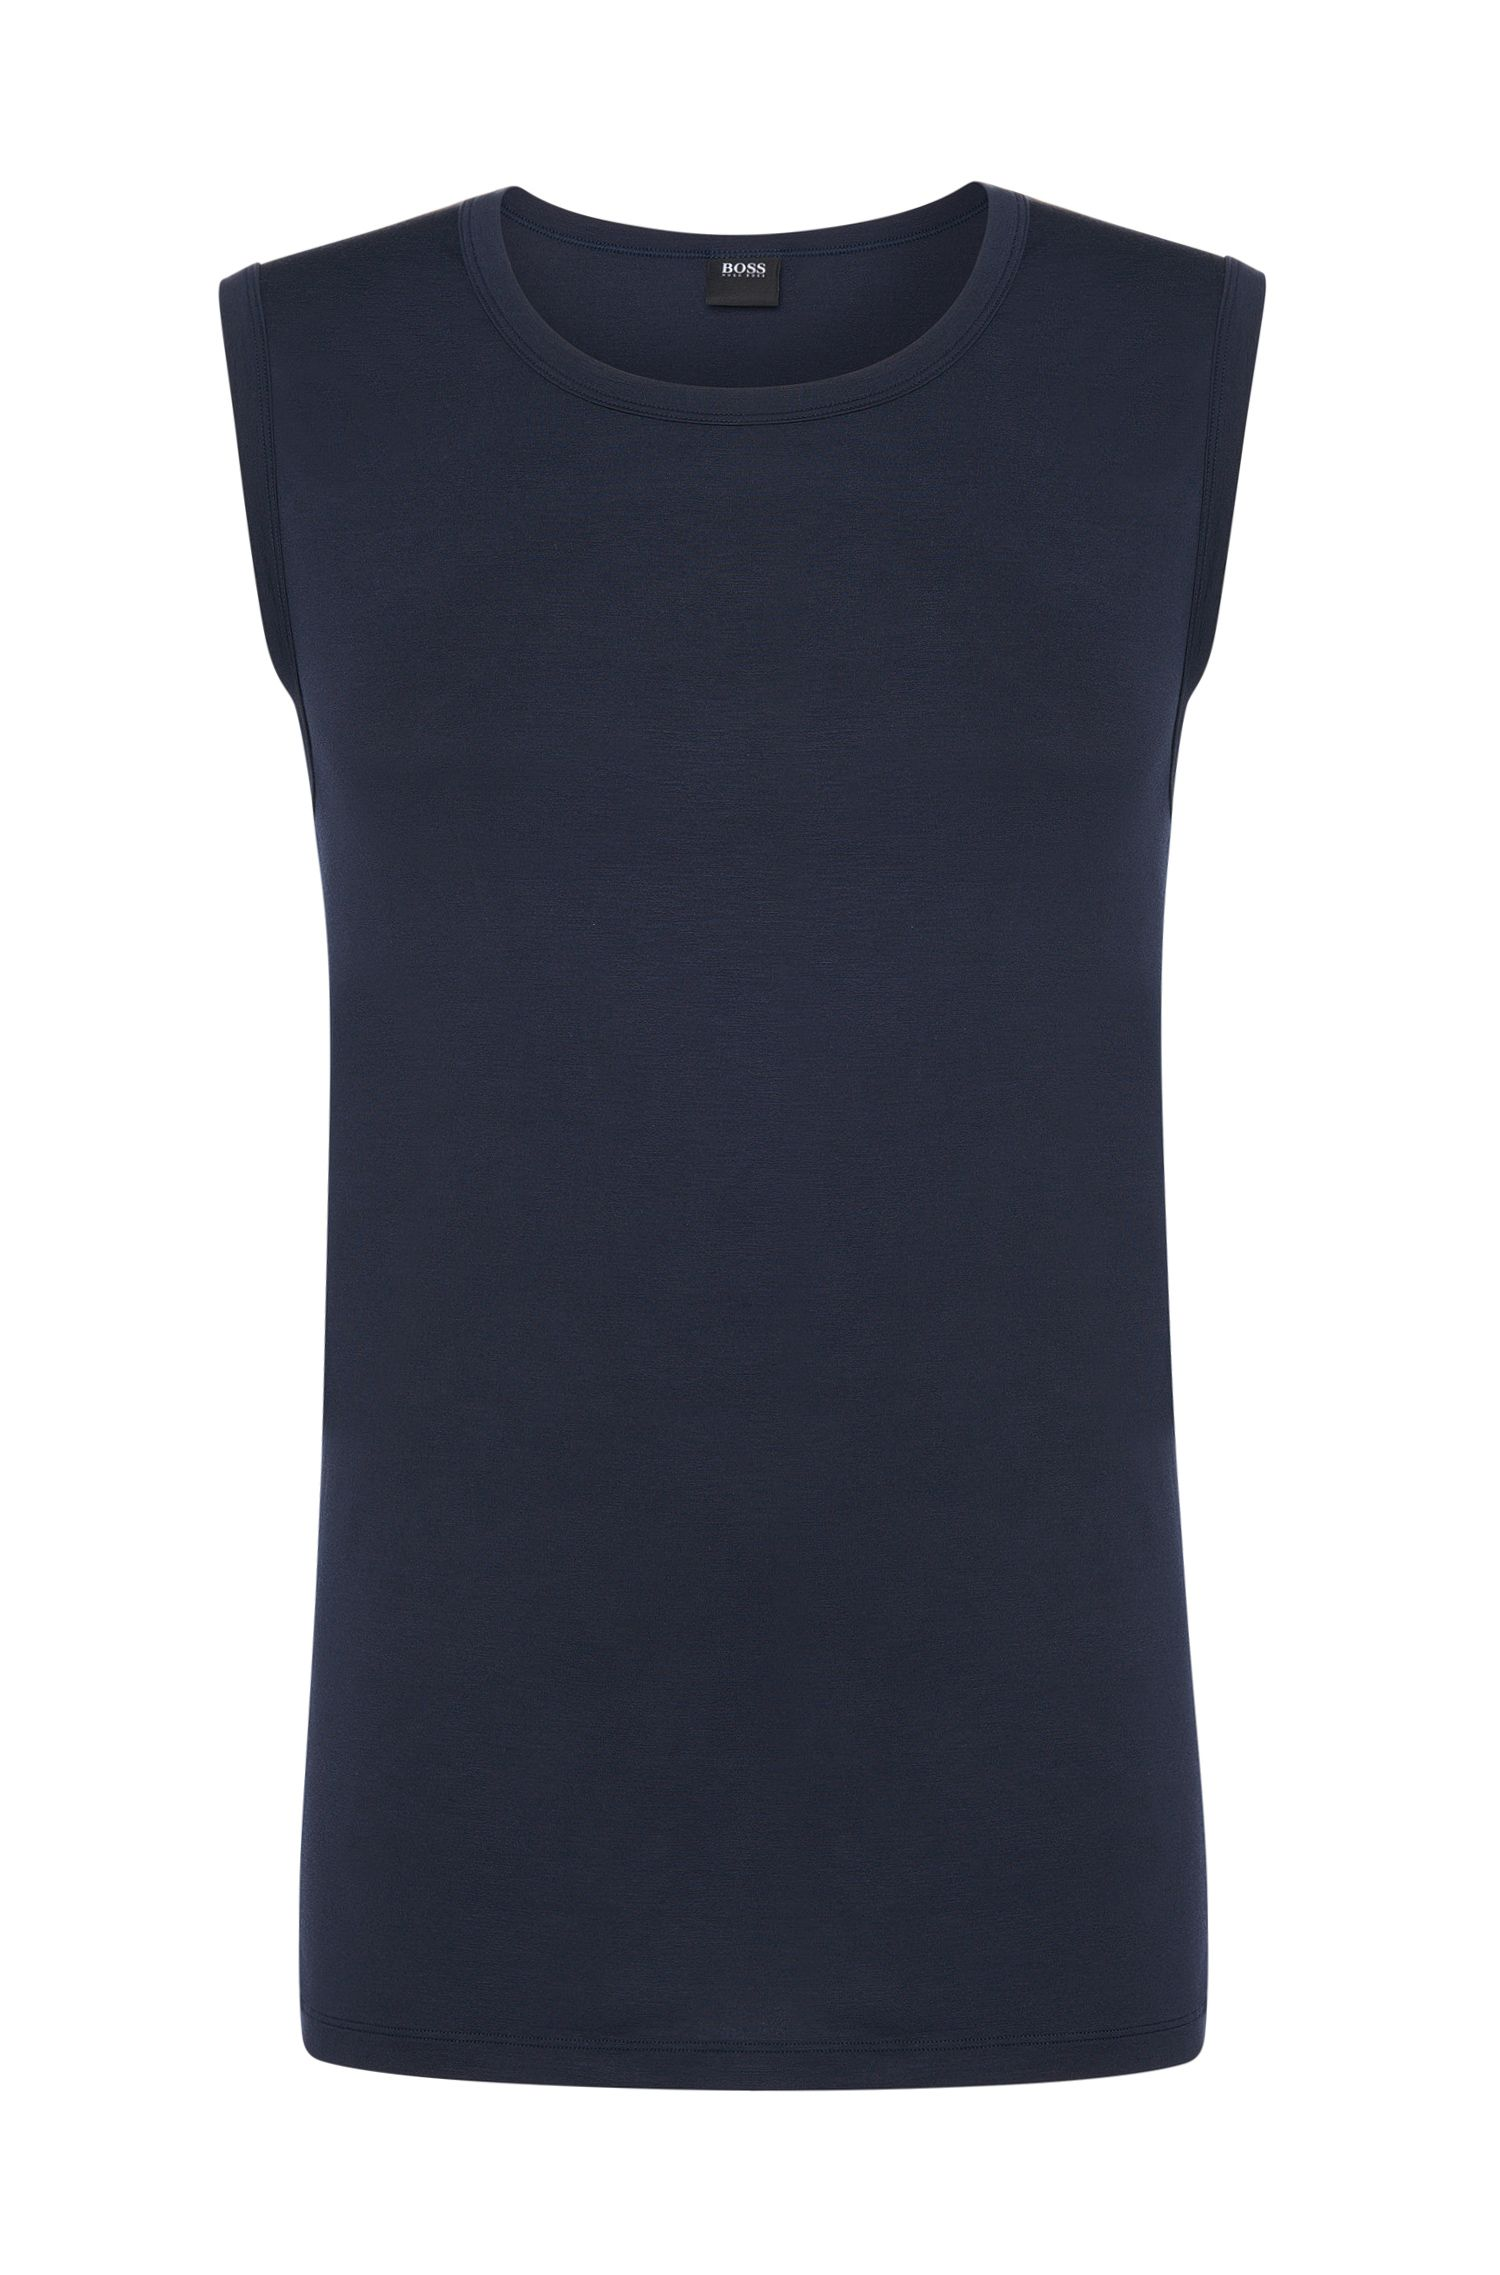 'Shirt SL RN Seacell' | Stretch Modal Blend Sleeveless T-Shirt